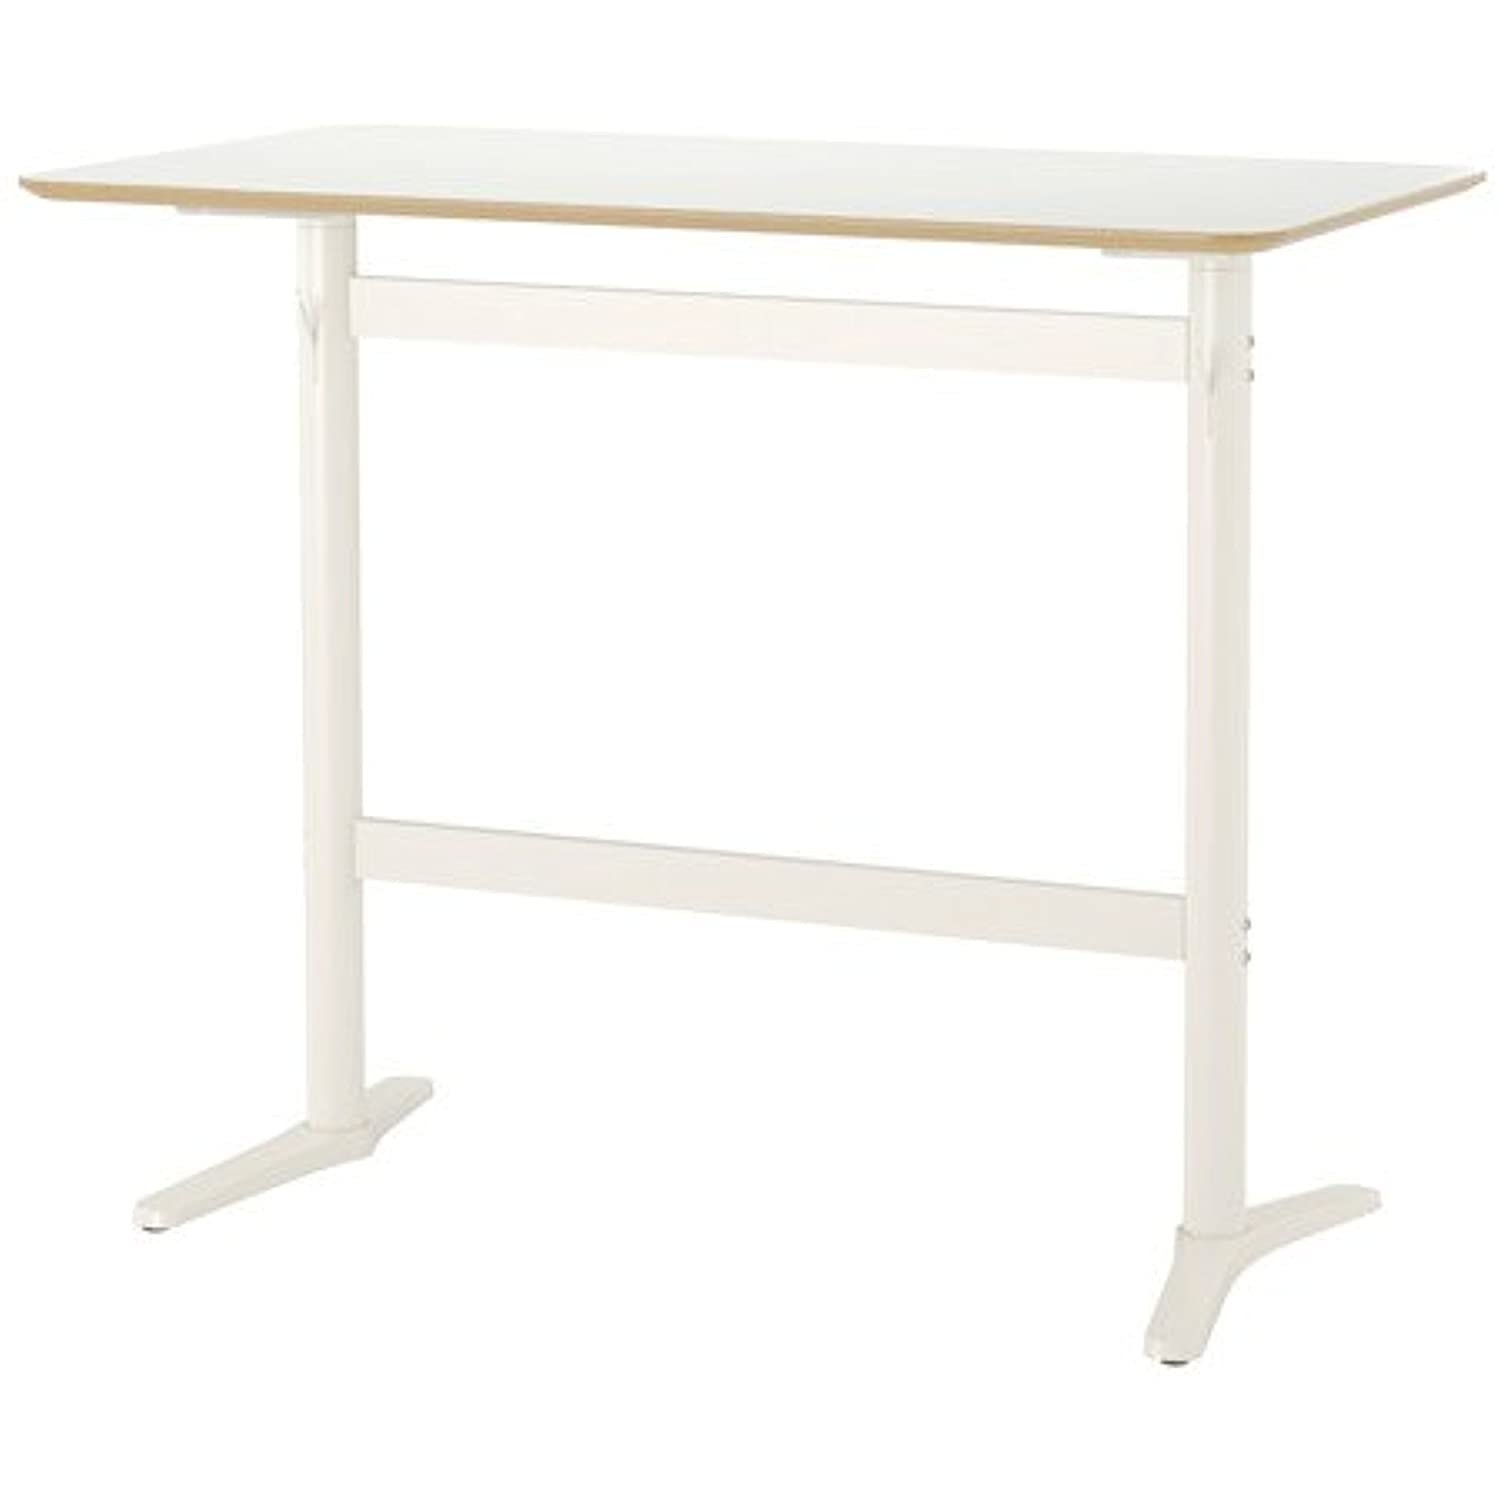 Amazon Com Ikea Bar Table White White 8204 82623 22